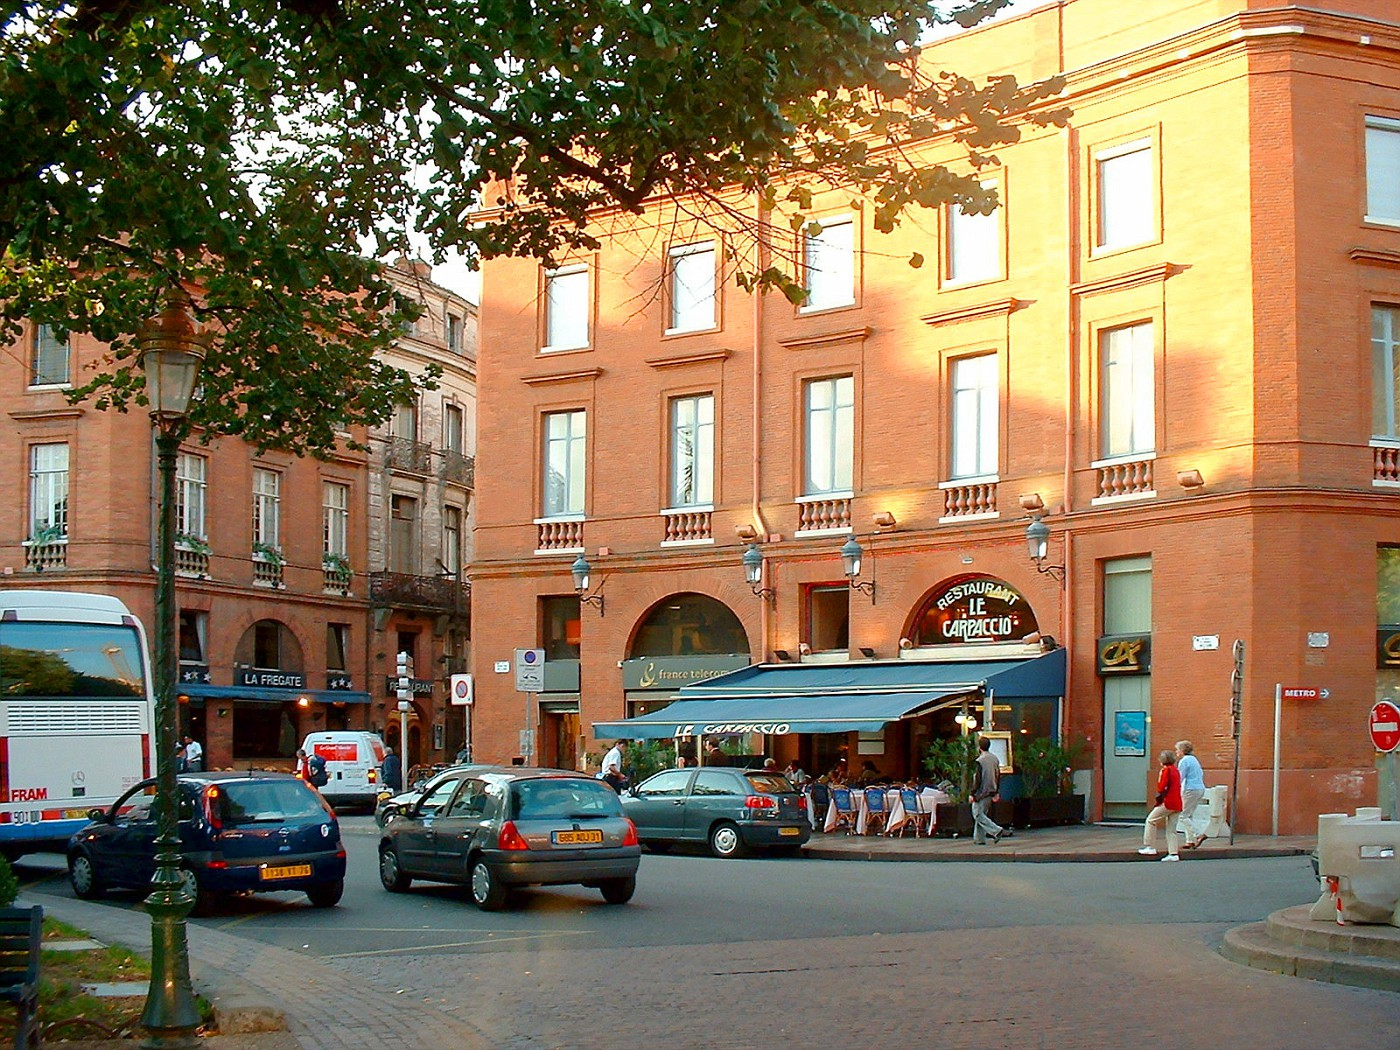 Toulouse - City Scenes (18)